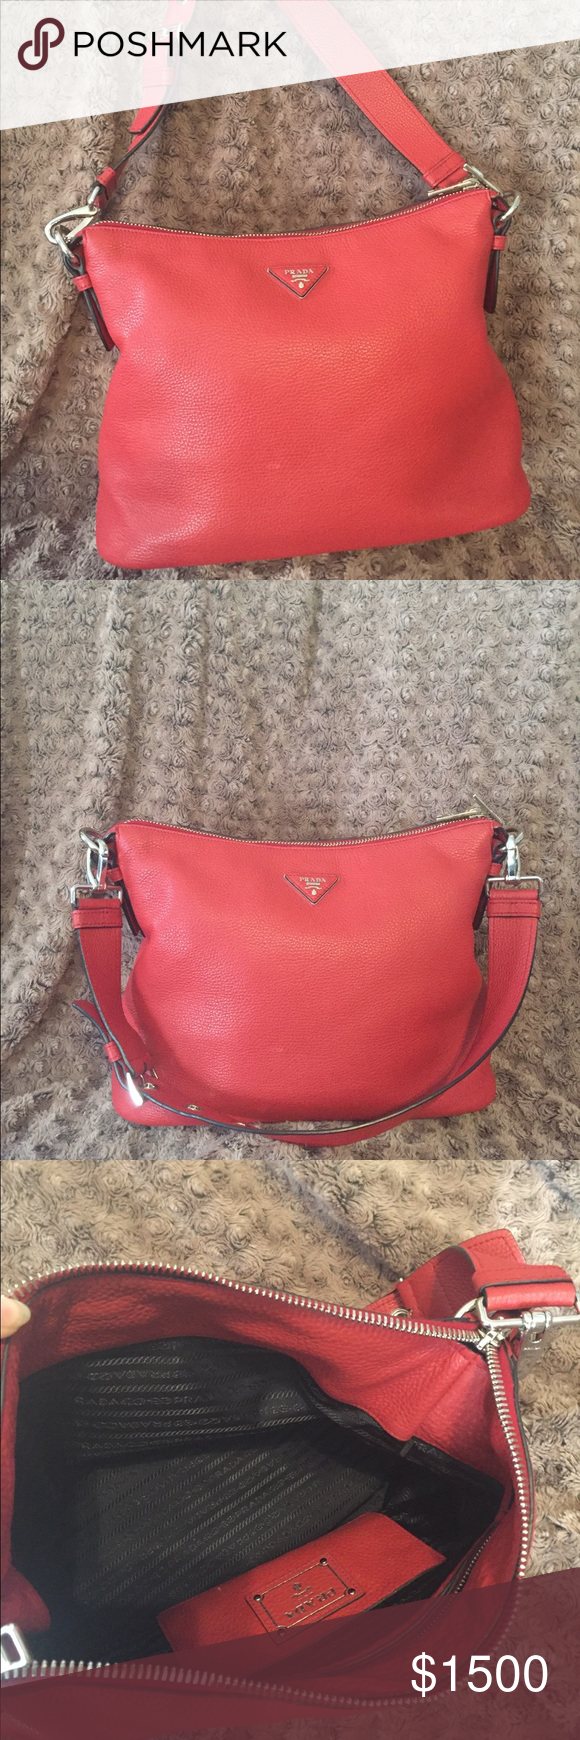 3f382cf086b9 Authentic Red Prada Vitello Daino leather hobo bag Like new! It's only been  used a